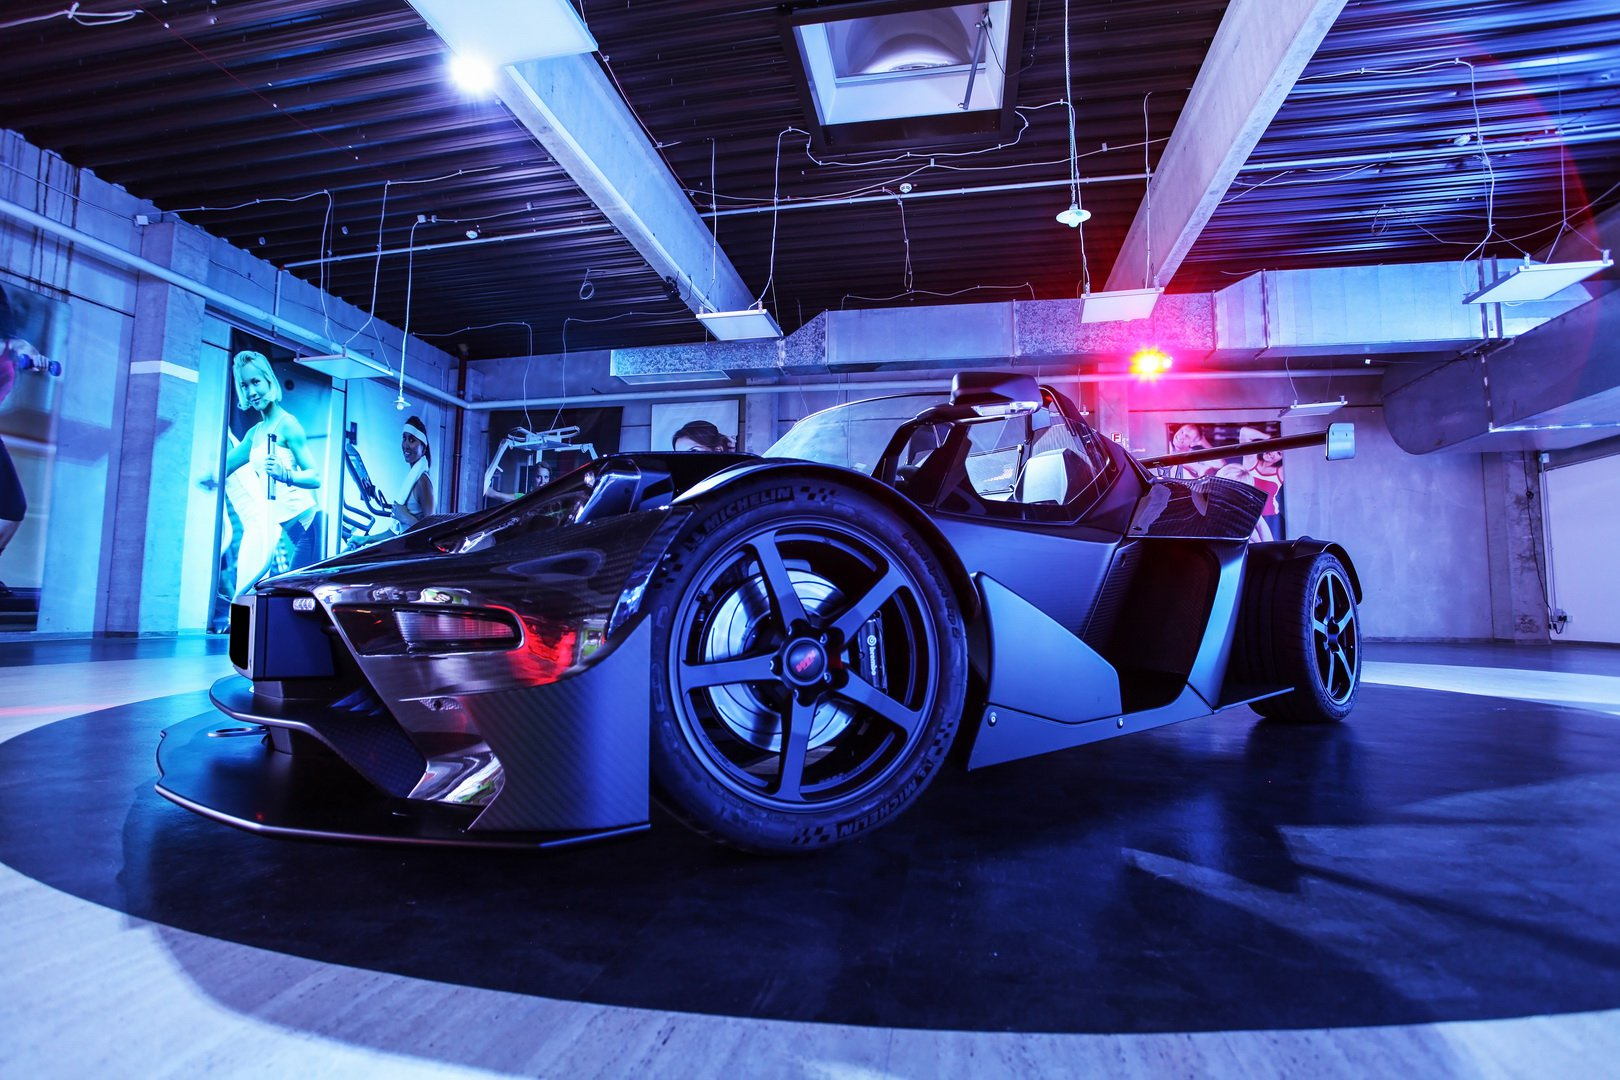 331ad3fe-ktm-x-bow-gt-r-tuning-wimmer-rst-6